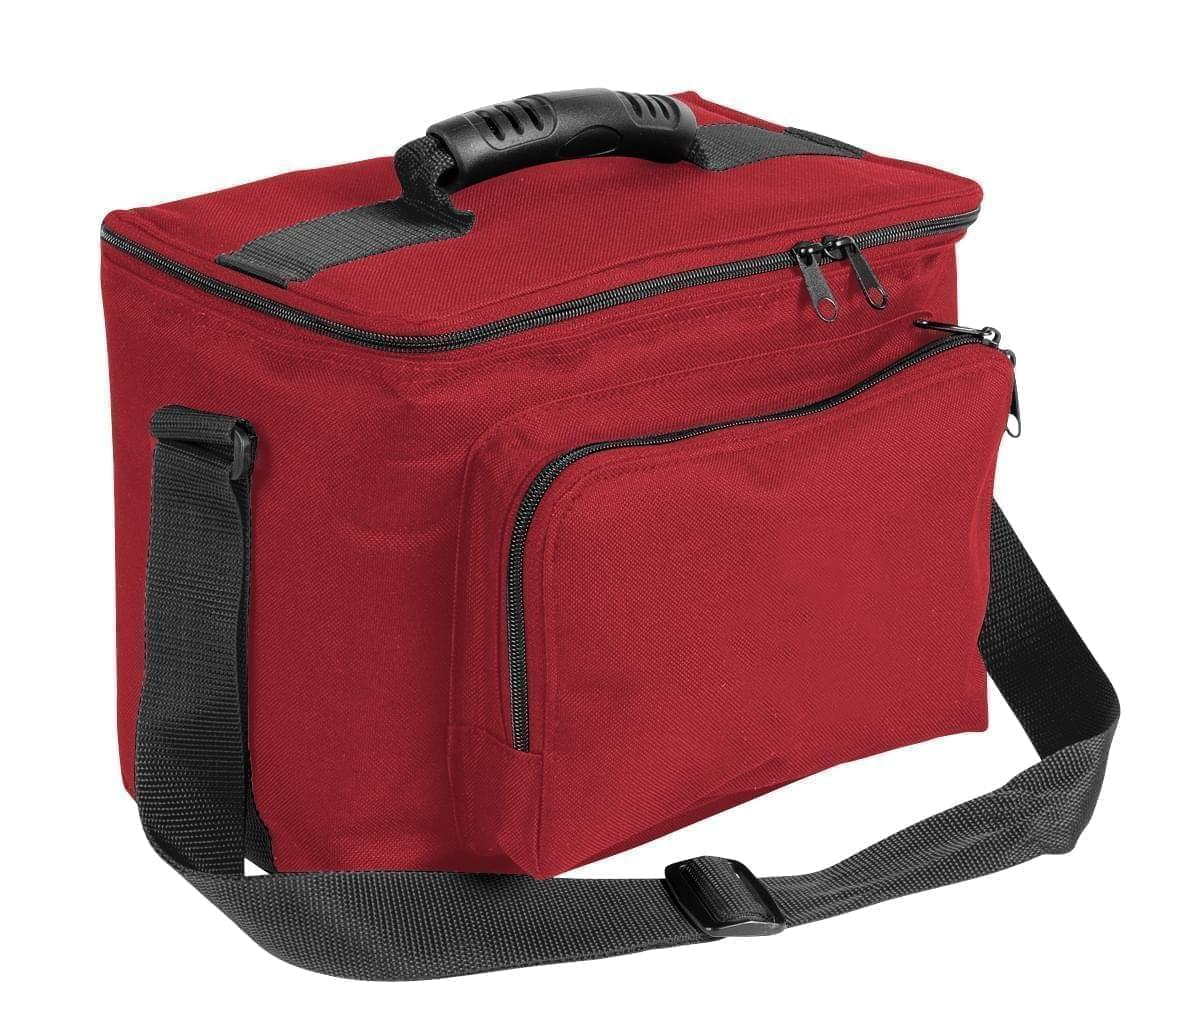 USA Made Nylon Poly Lunch Coolers, Red-Black, 11001161-AZR